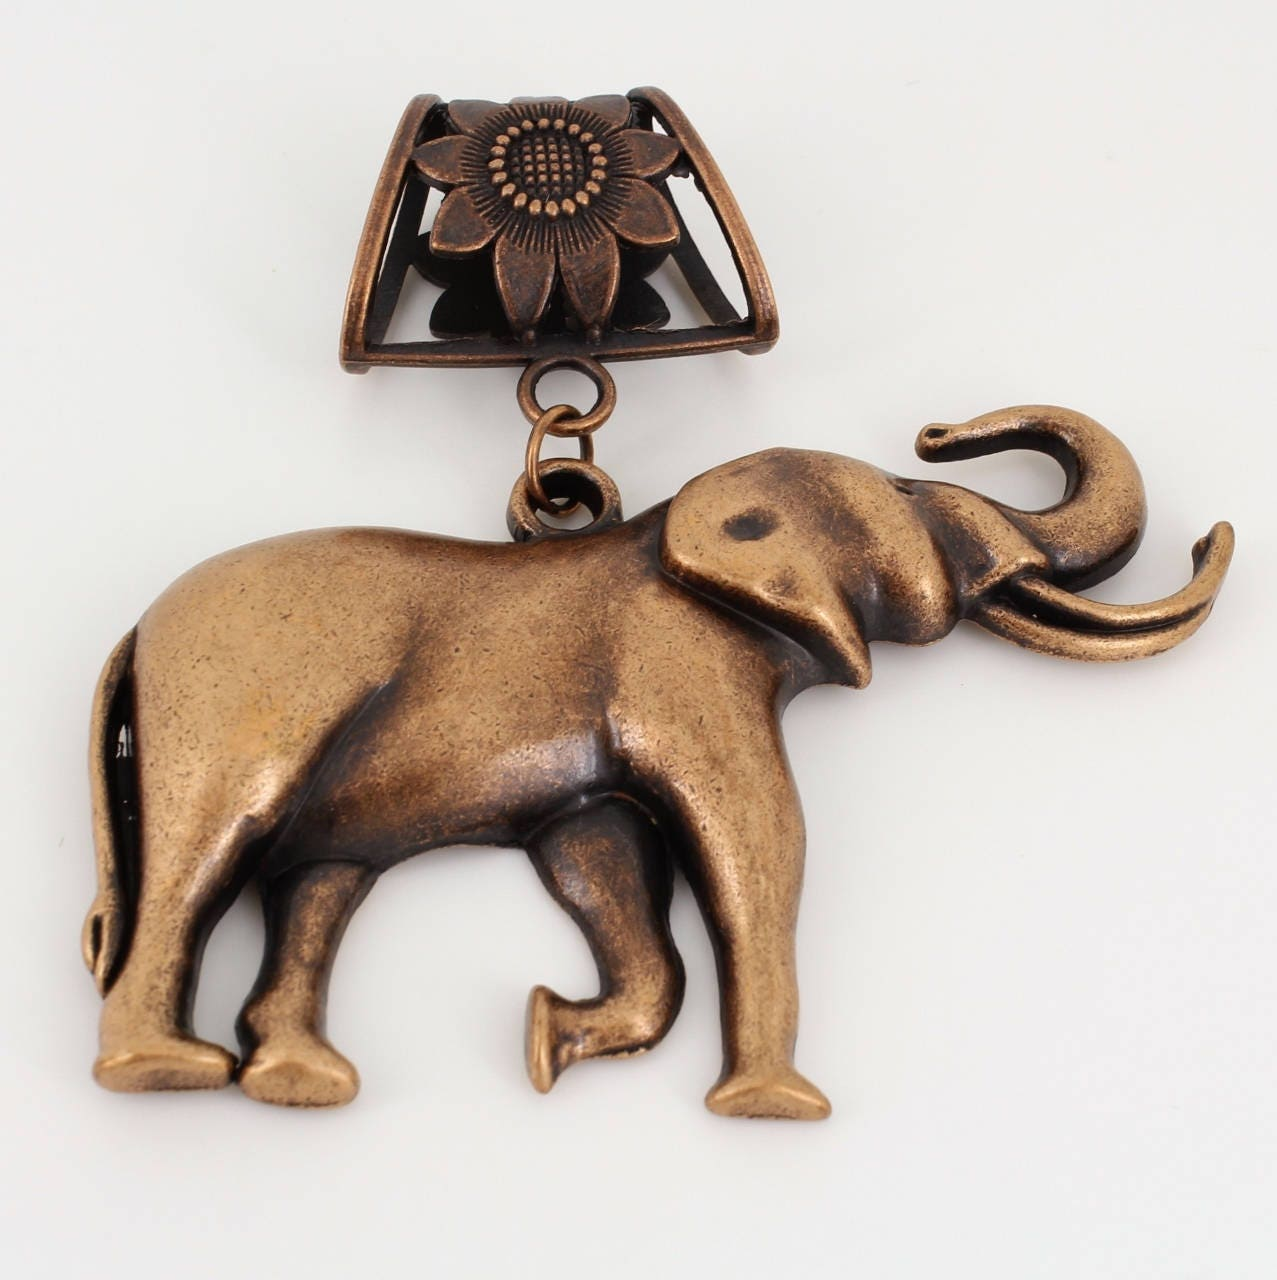 Large,Metal,Elephant,Pendant,,Scarf,Jewelry,,Antique,Copper,~,Accessory~,Charm,Jewelry,scarf_charm,scarf_accessory,scarf_pendant,scarf_jewelry,scarf_slide,scarf_bling,elephant_scarf_slide,elephant_pendant,elephant_with_tusks,animal_lover_gift,antique_copper,elephant_jewelry,Autumn_jewelry,elephant pendant,jump ring,antique copper ba